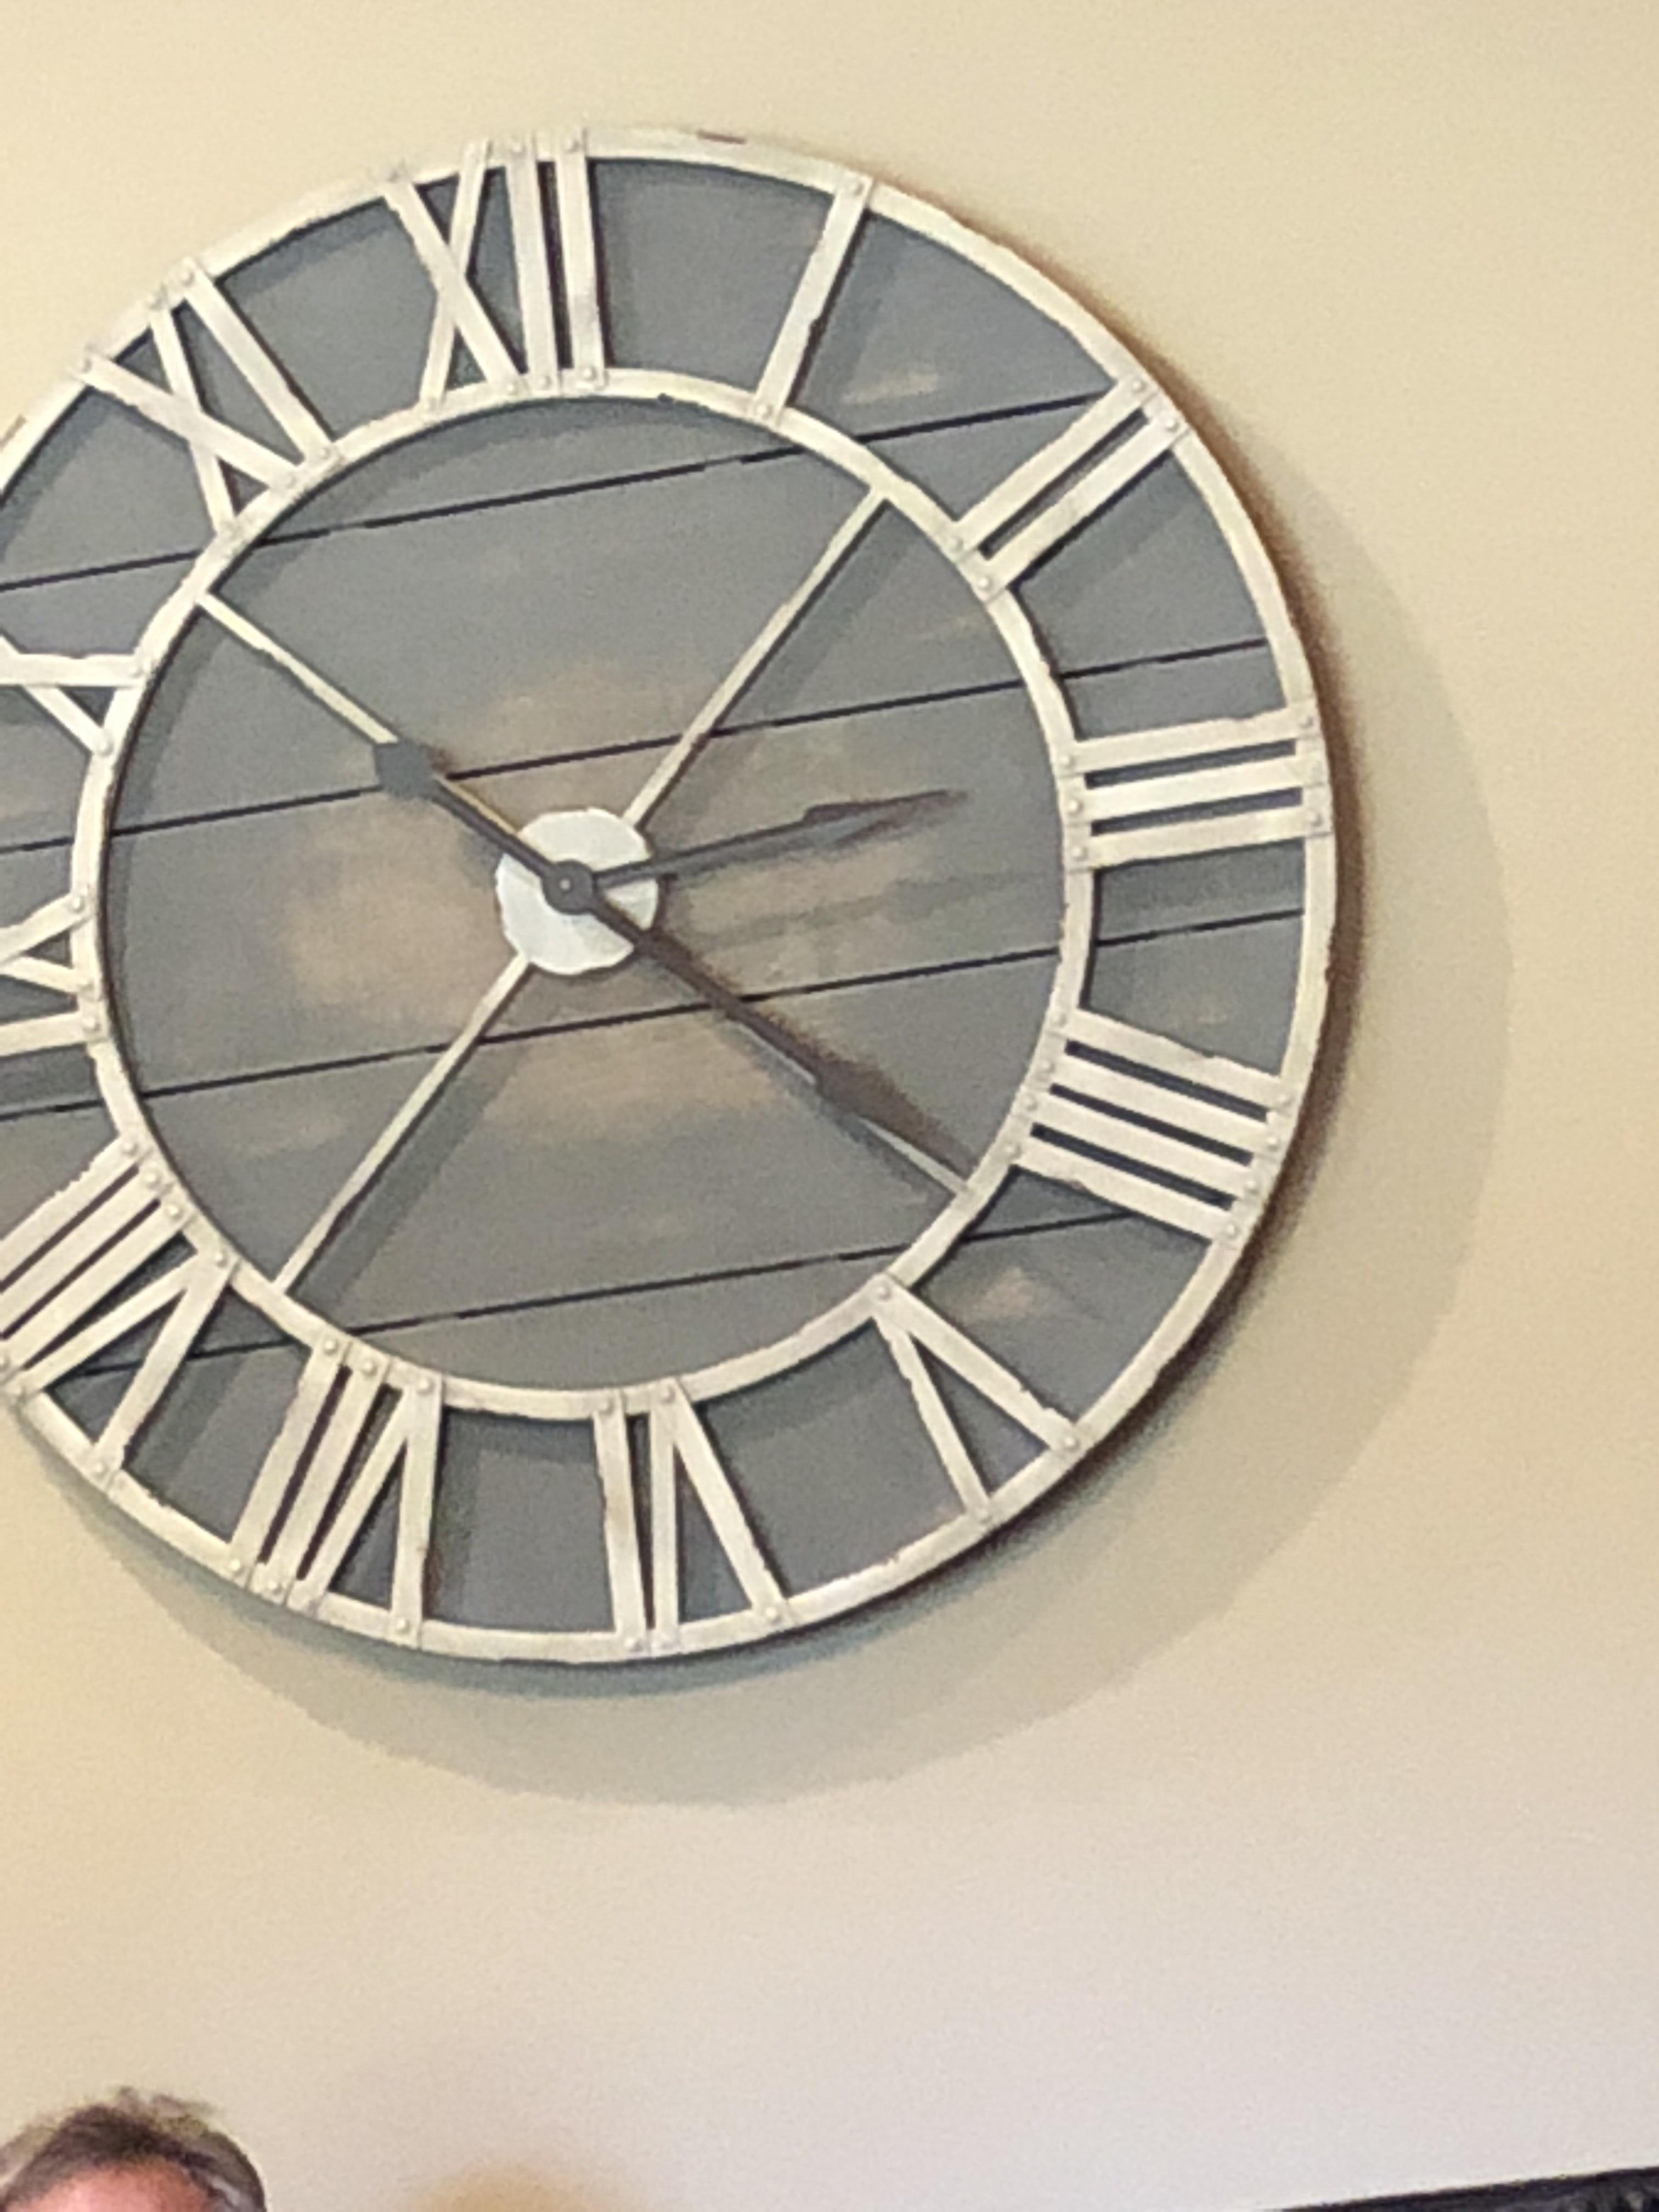 This 4 On My Clock Is Wrong In Roman Numerals Onejob